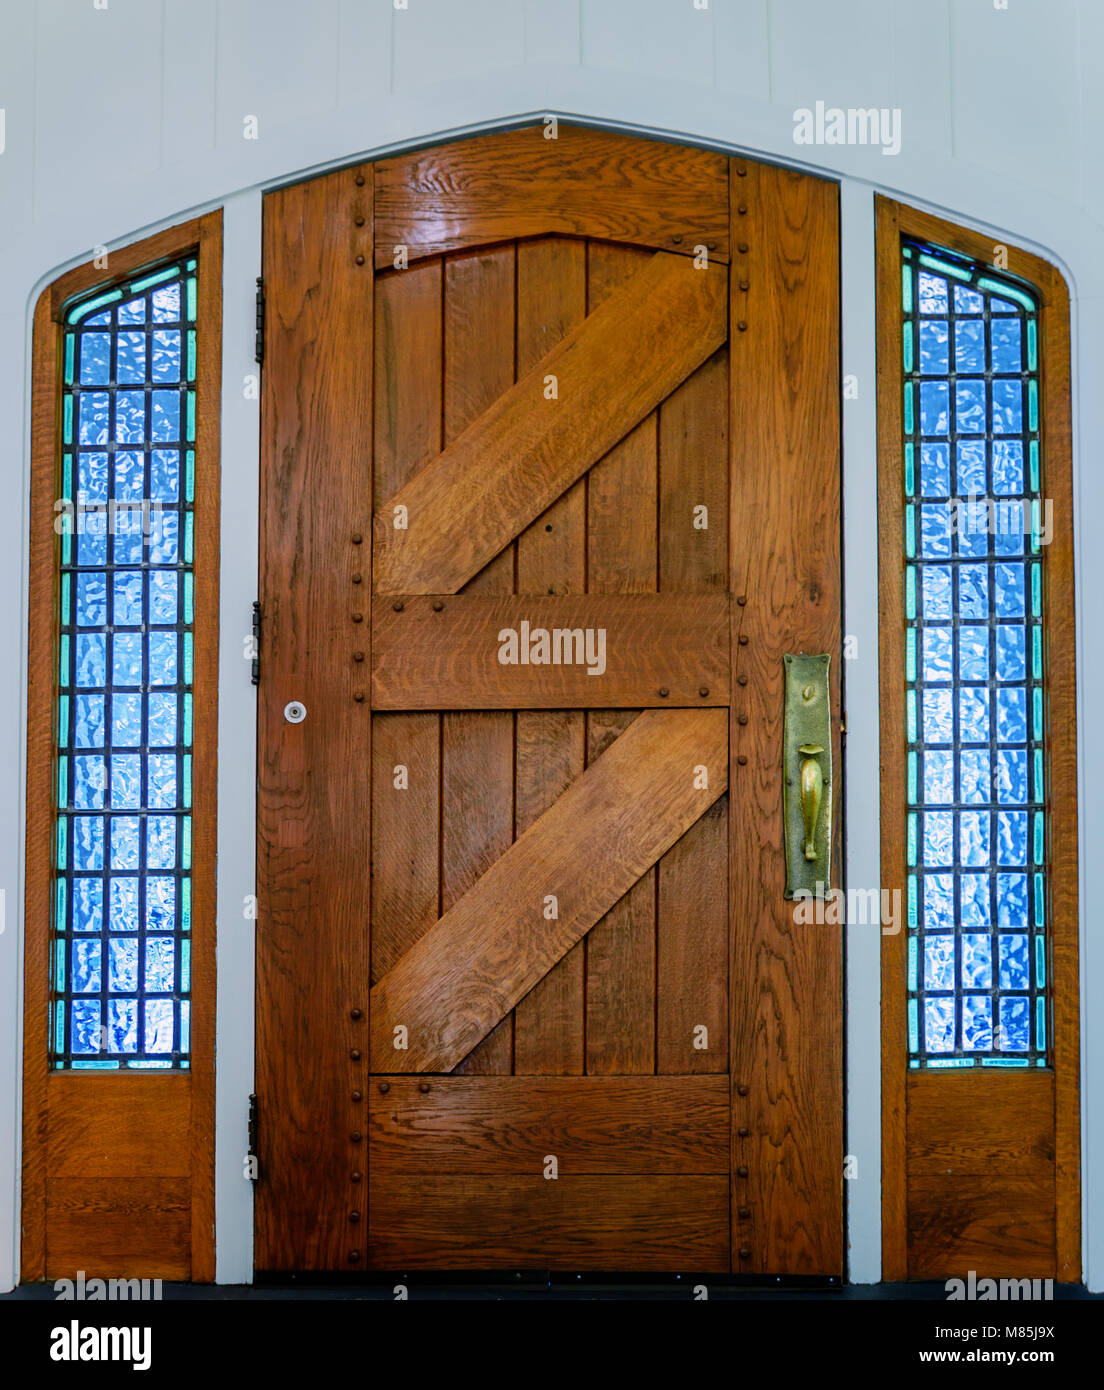 An Old Wooden Front Door Of Planks With A Metal Handle And Glass Windows  With Square